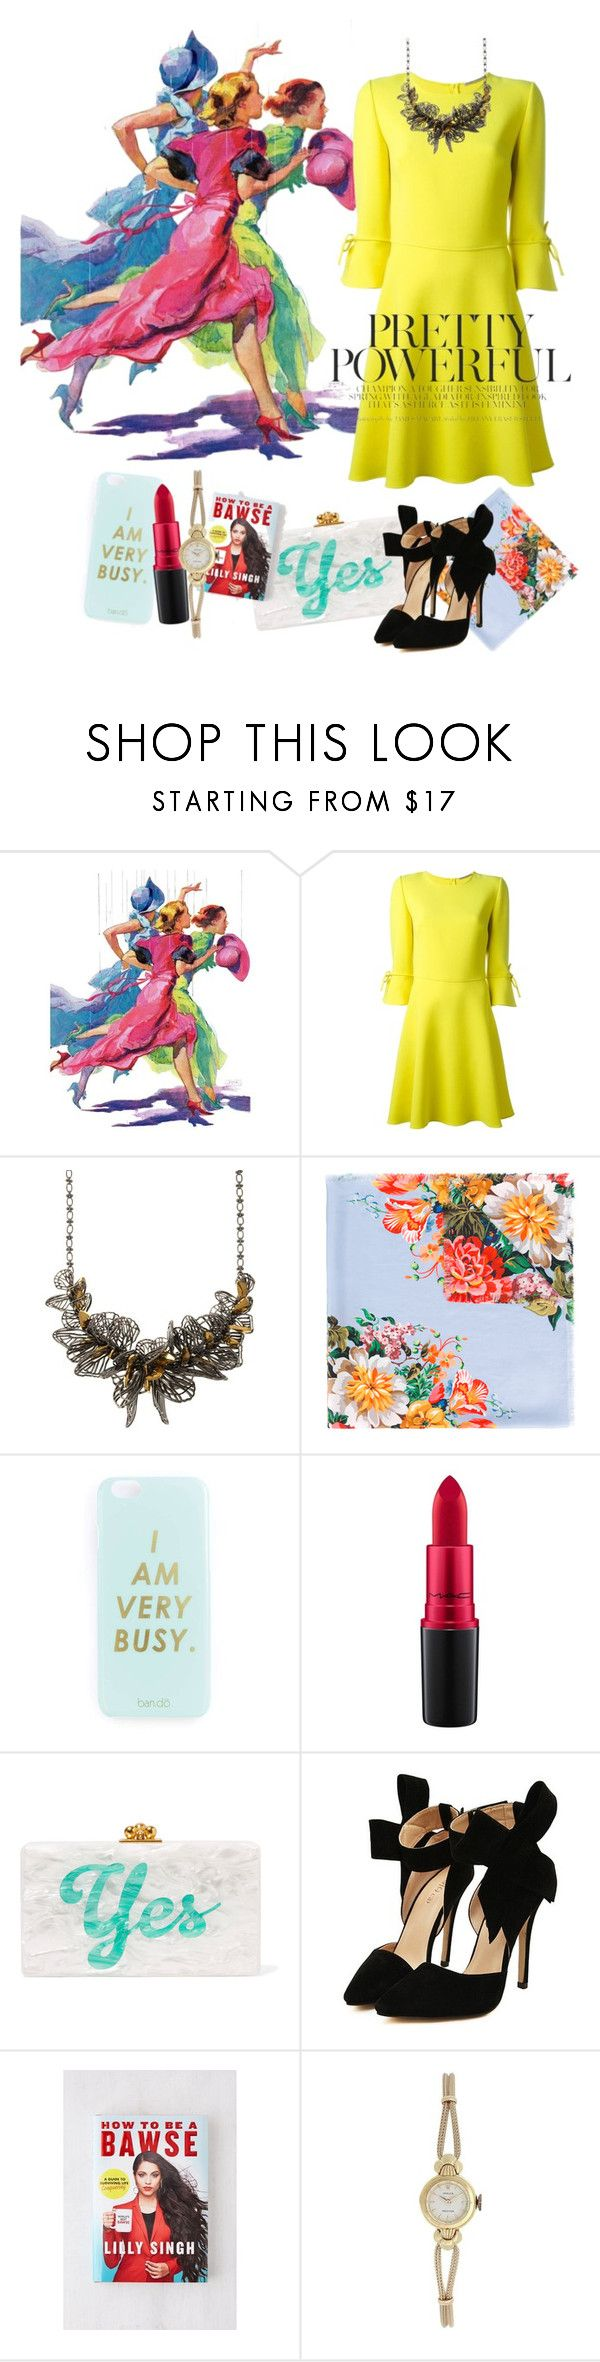 """Pretty Powerful"" by ducklemeg ❤ liked on Polyvore featuring Marmont Hill, Ermanno Scervino, Jenny Packham, Gucci, Miss Selfridge, MAC Cosmetics, Edie Parker, Urban Outfitters and Rolex"